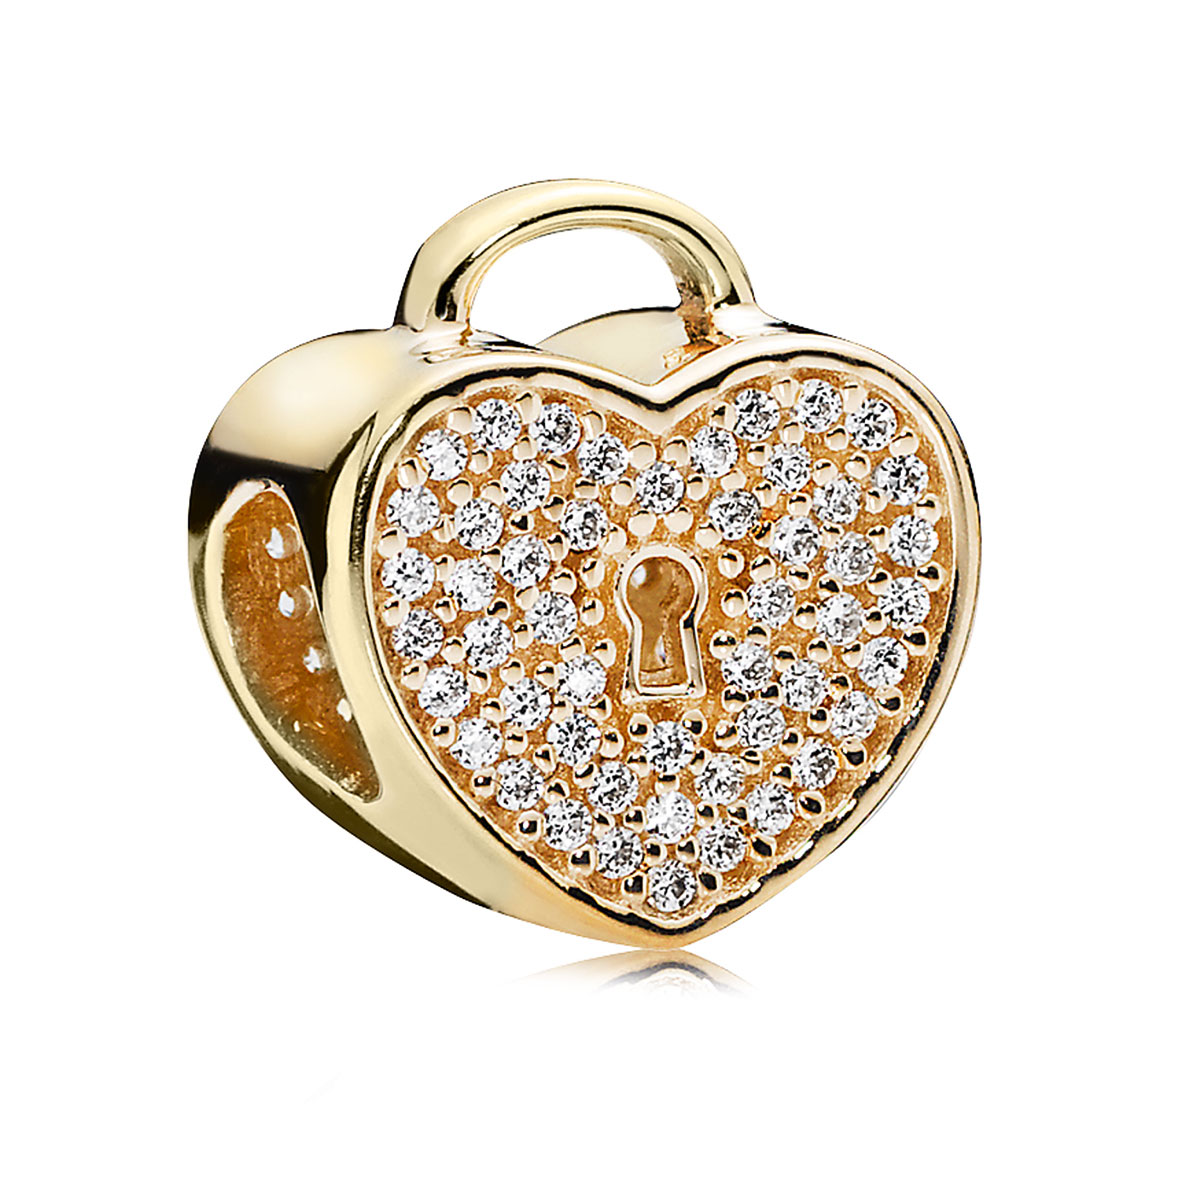 P1080-PG Polished Gold-Plated 2 Pieces Gold heart charm,Heart charm Jewelry Making